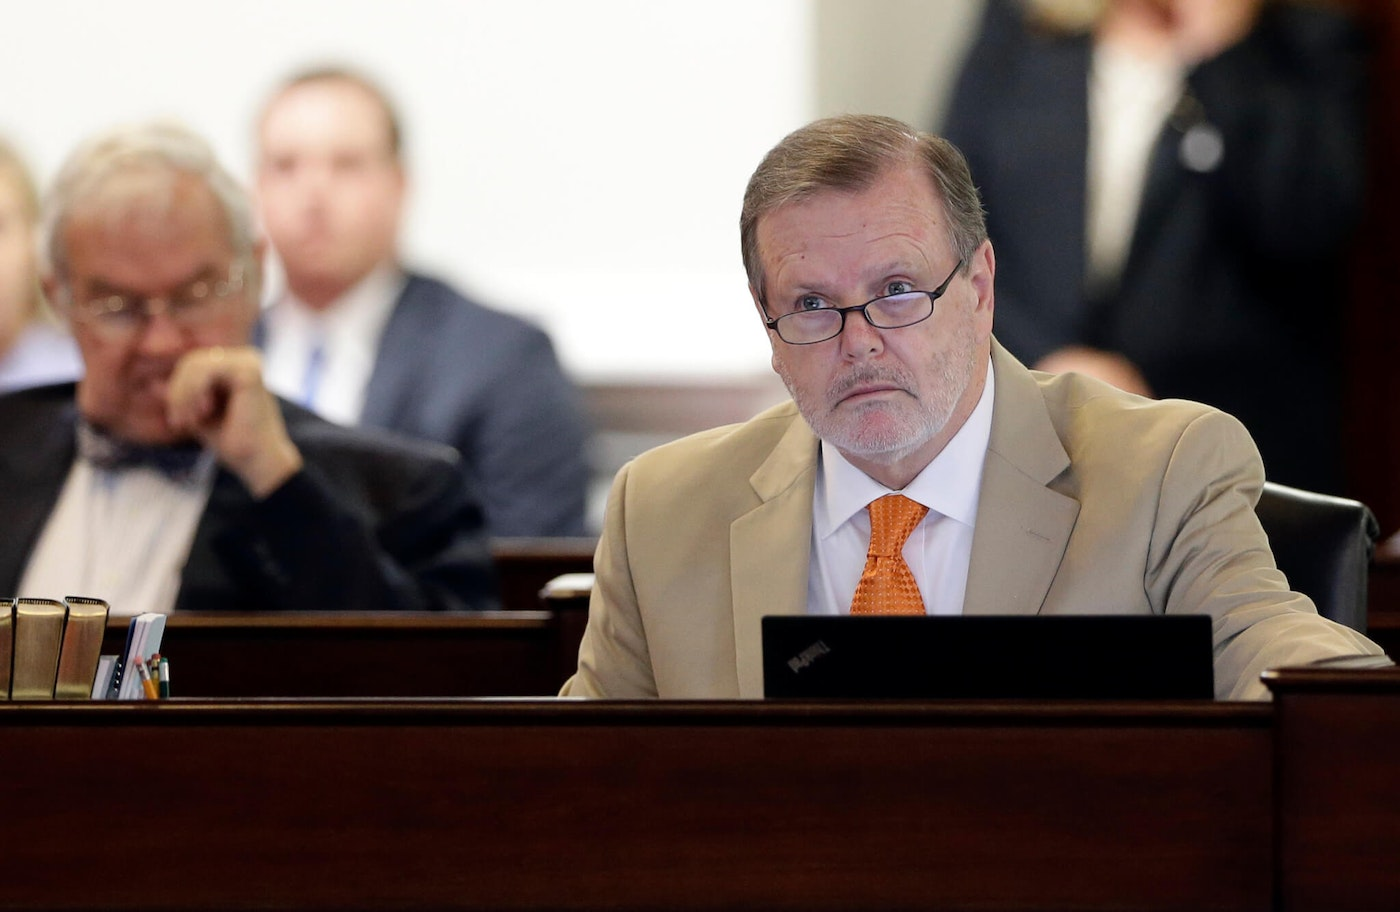 NC Senate leader Phil Berger in a 2016 file photo. A NC teacher says Berger and House Speaker Tim Moore have overseen a punishing decade for public education. She's calling on North Carolinians to vote as if their schools are at stake. (AP Photo/Gerry Broome)